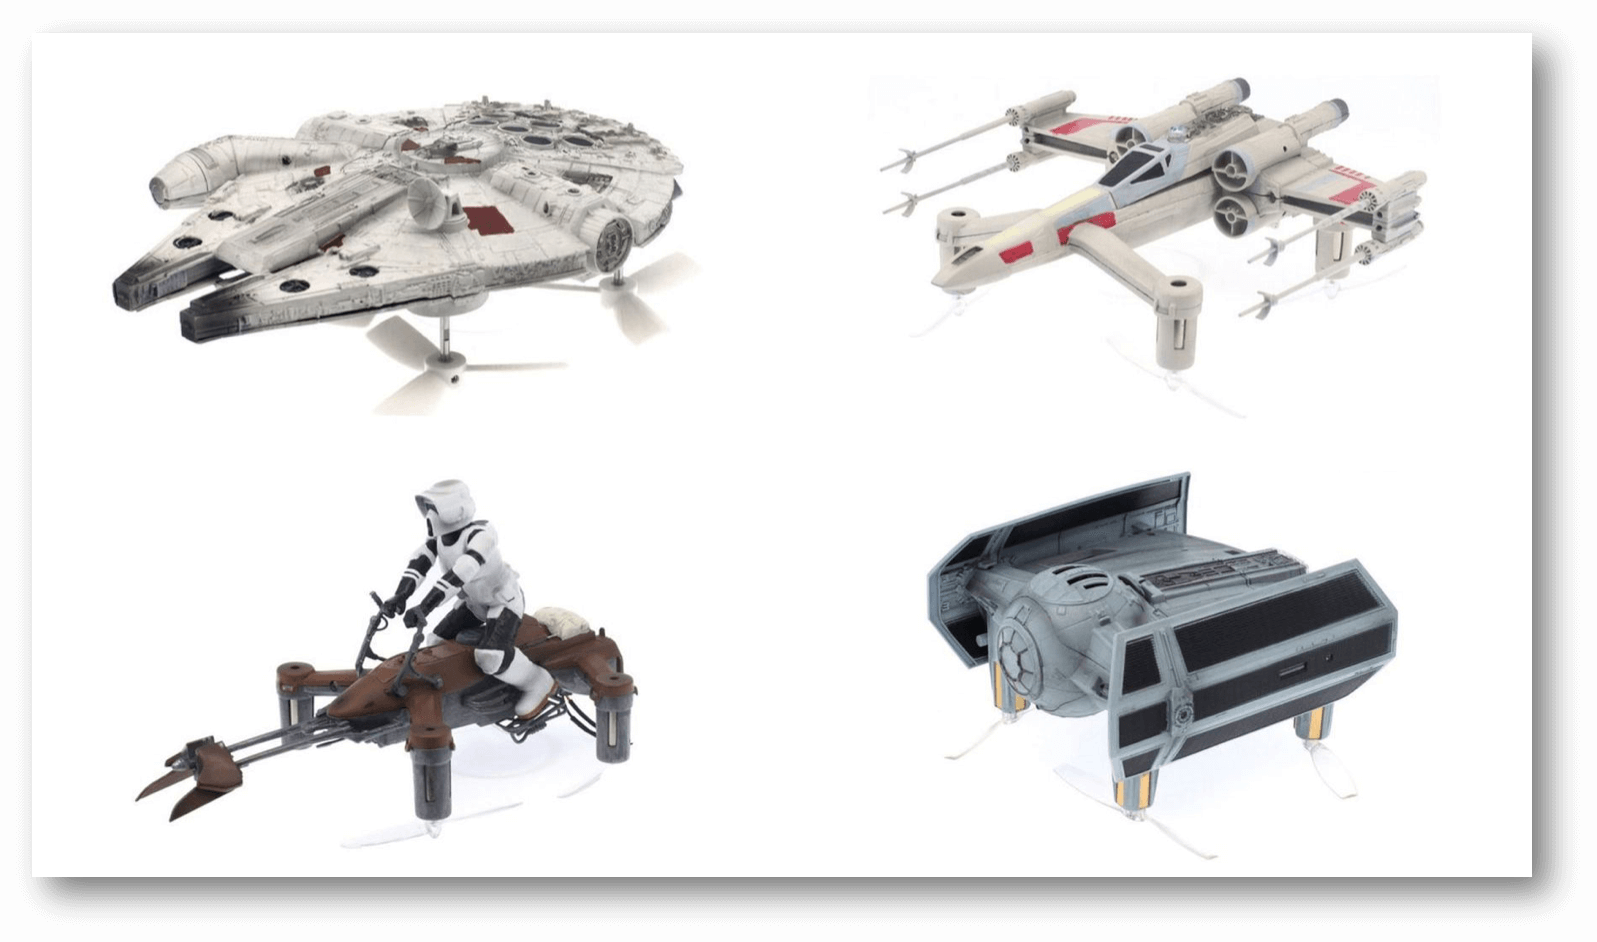 Star Wars drone models